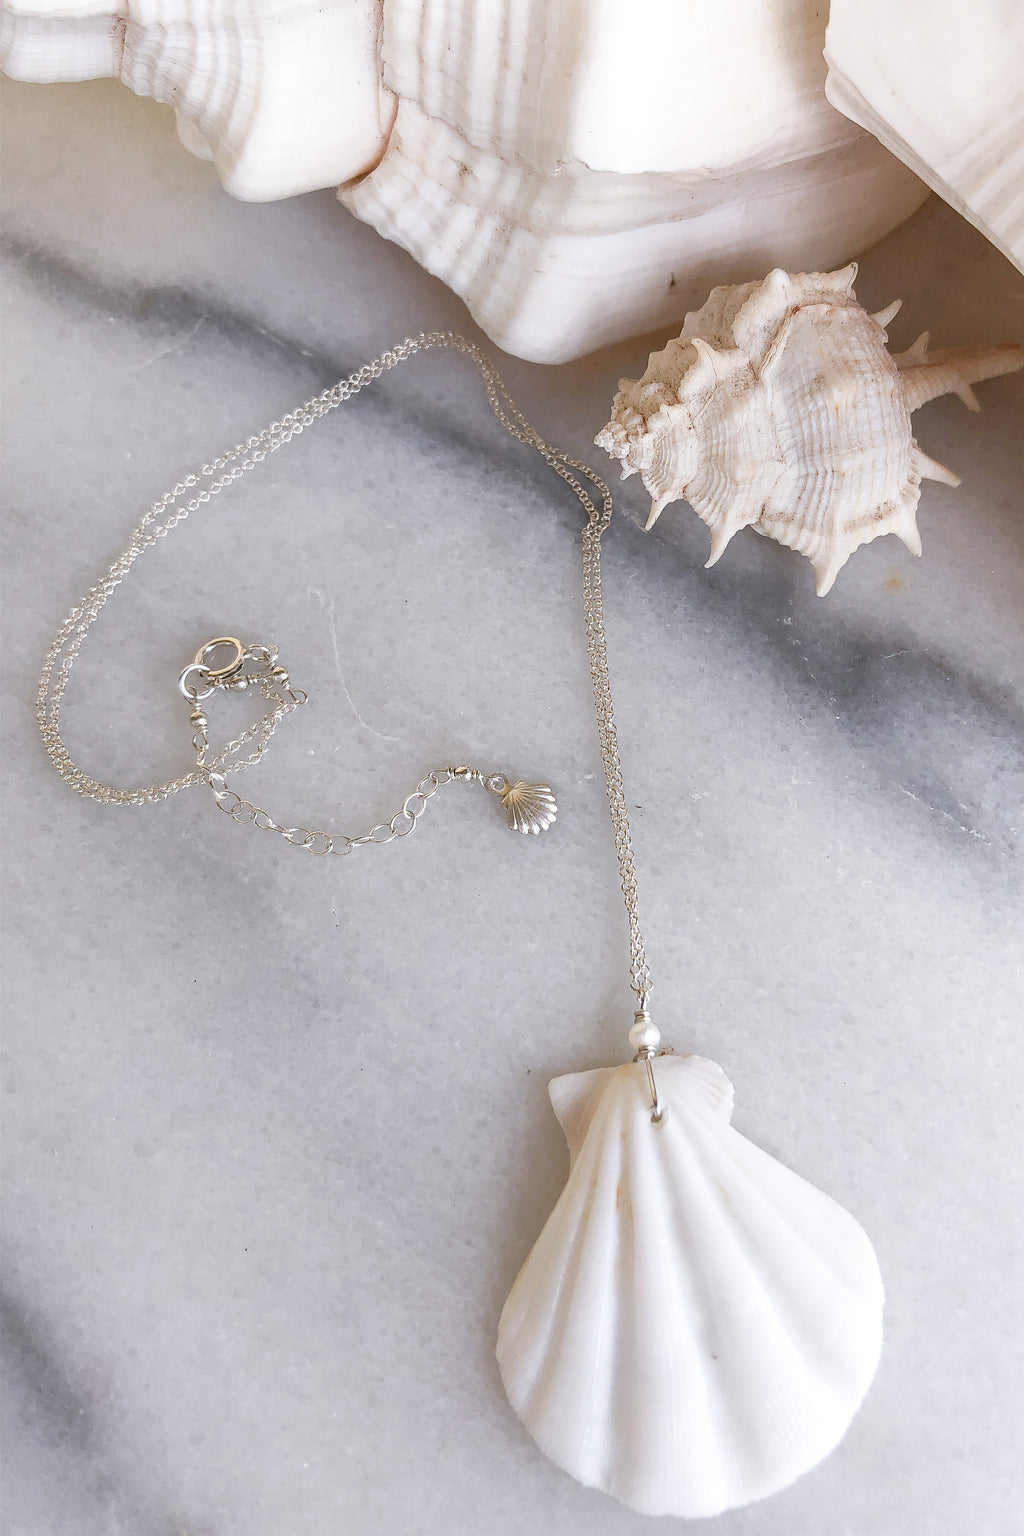 White Shell Necklace  - Sterling Silver